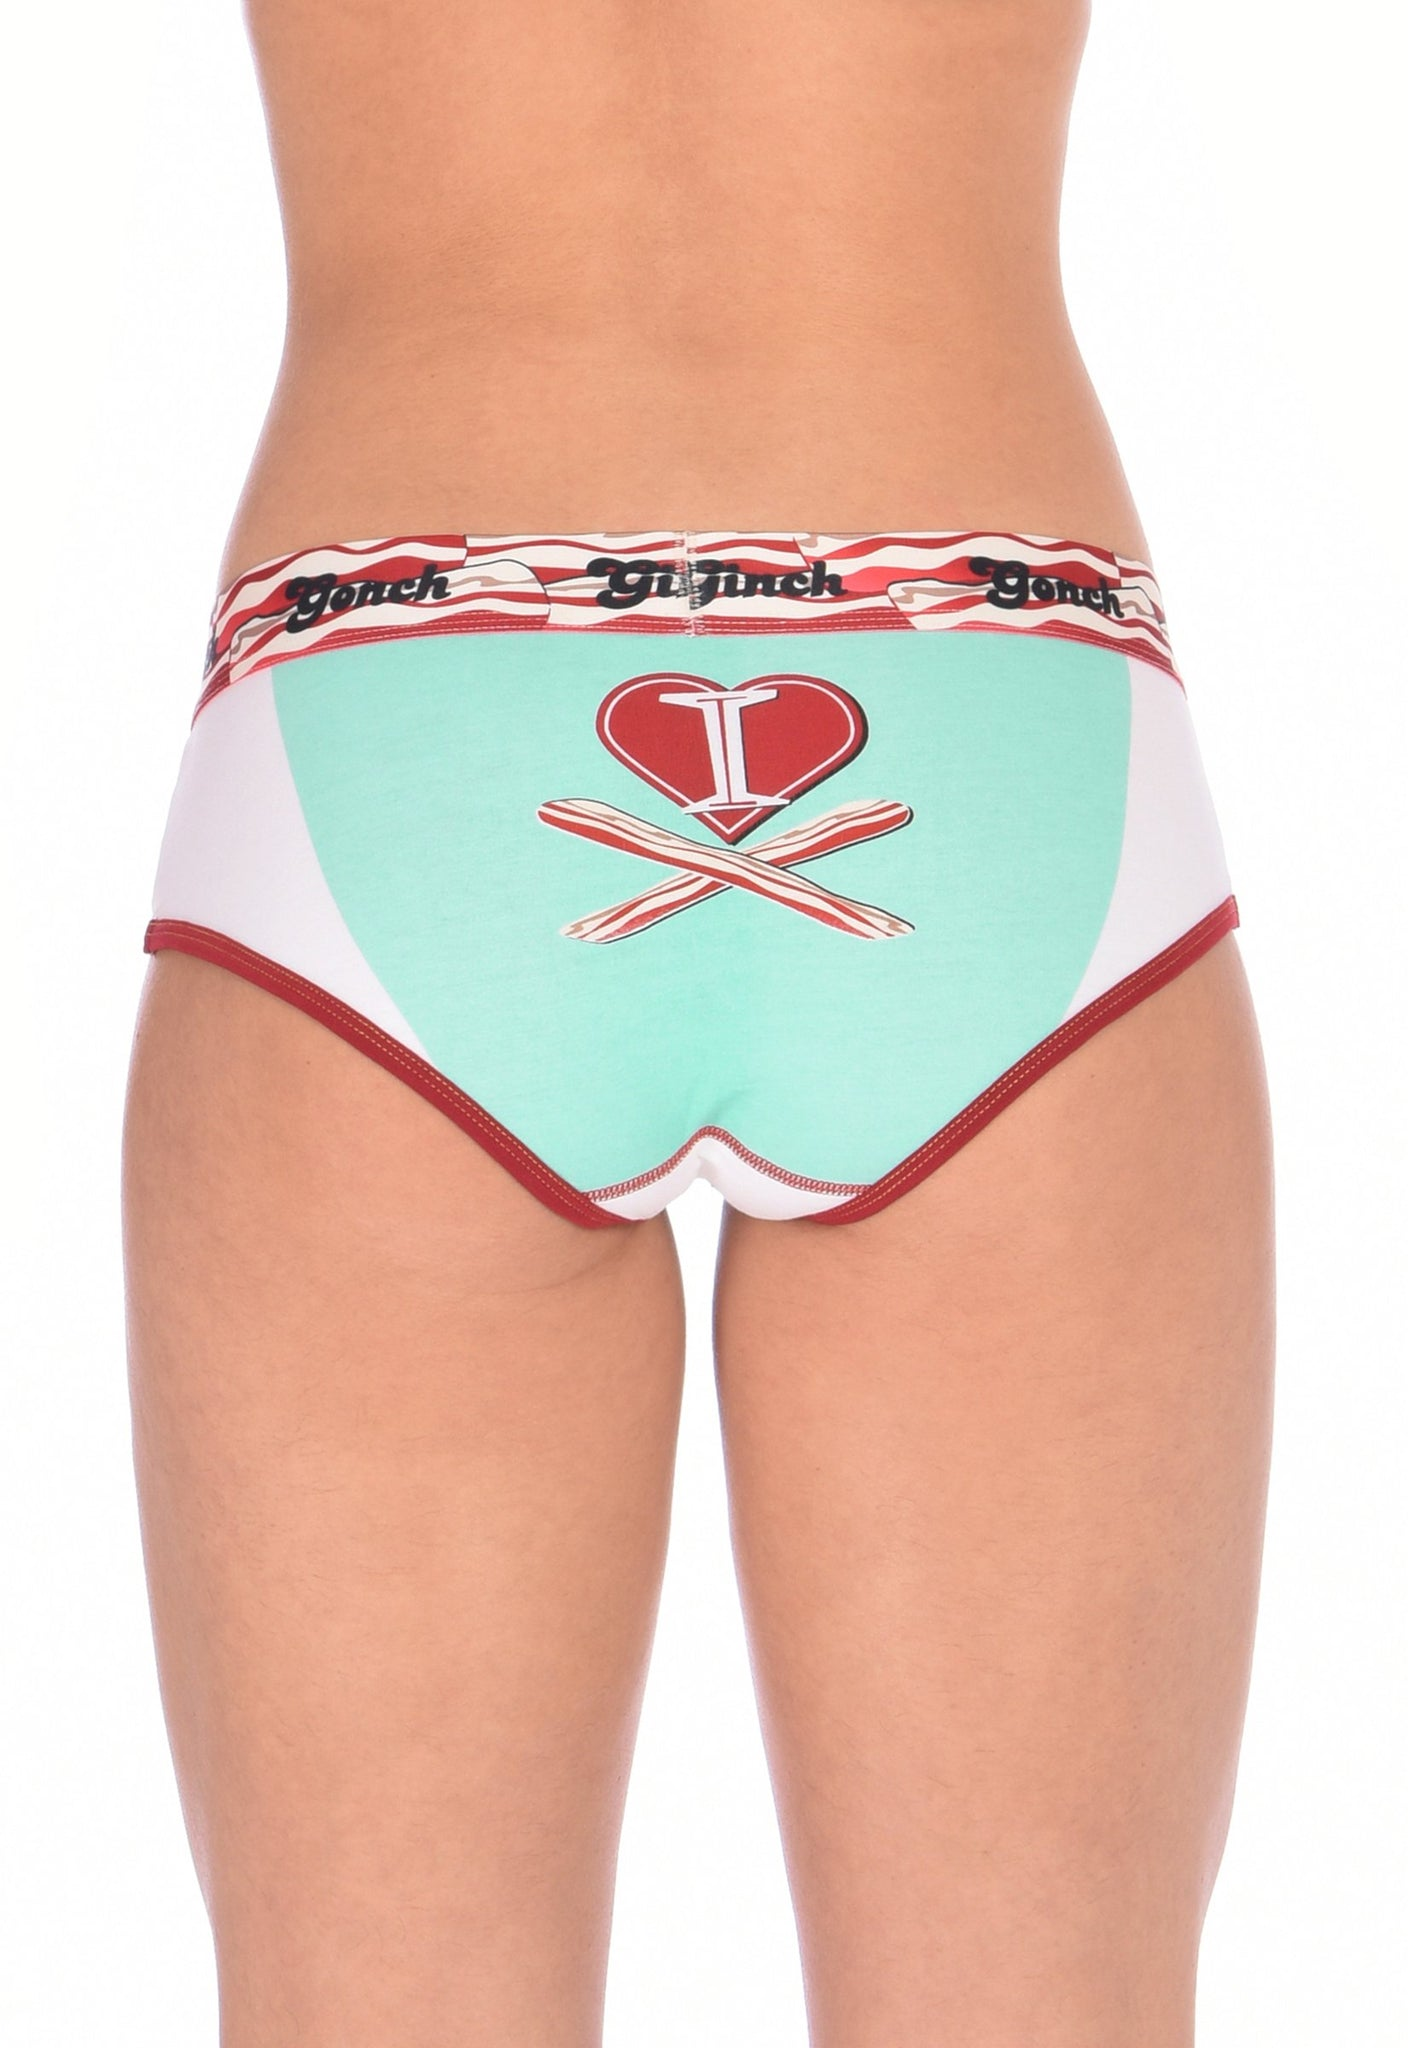 I Love Bacon Brief Ginch Gonch Women's underwear boy cut y front with white teal and red, and bacon detail and waistband back